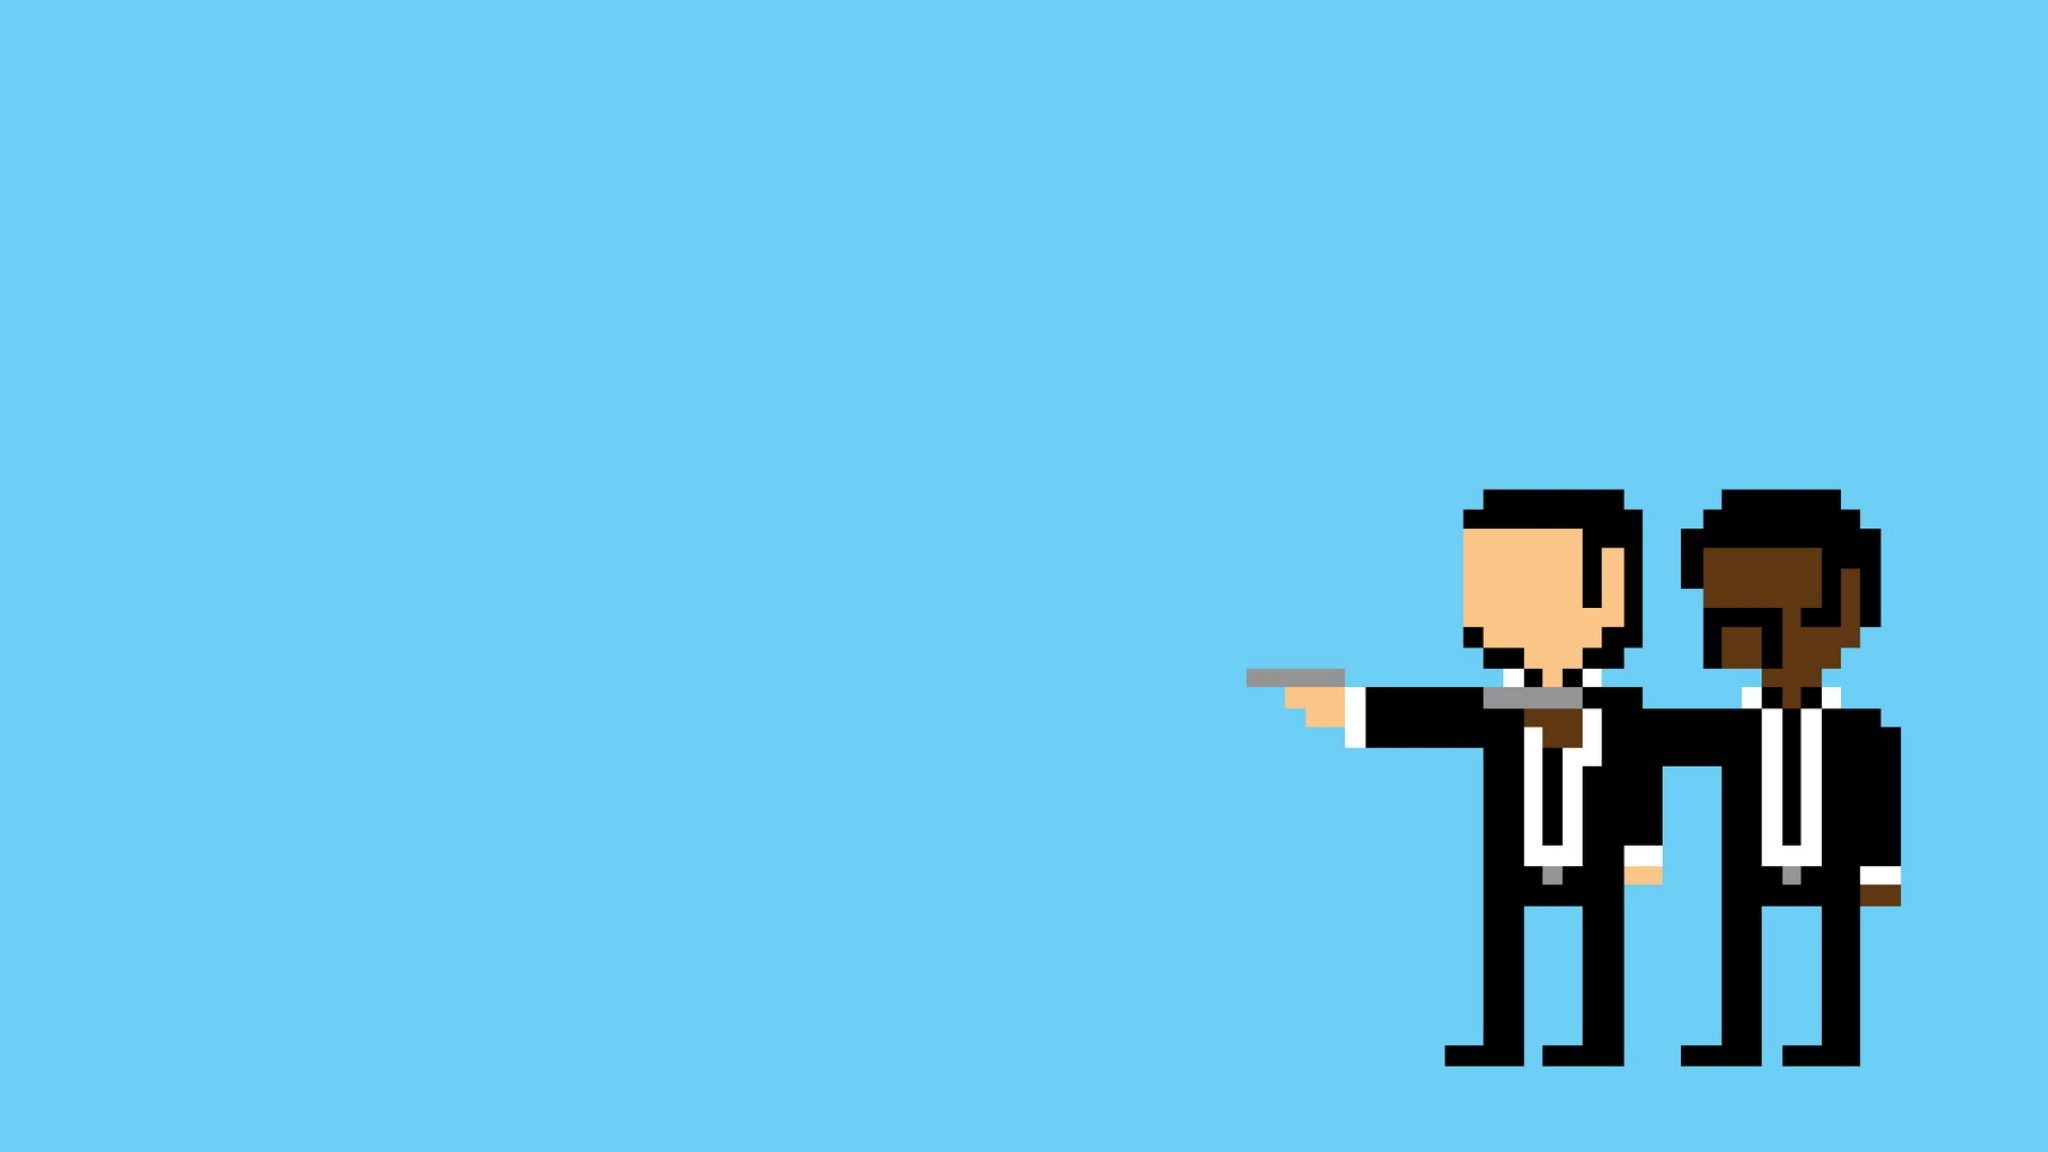 Wallpaper 2048x1152 Pulp pixel People Minimalism Pulp fiction HD HD 2048x1152